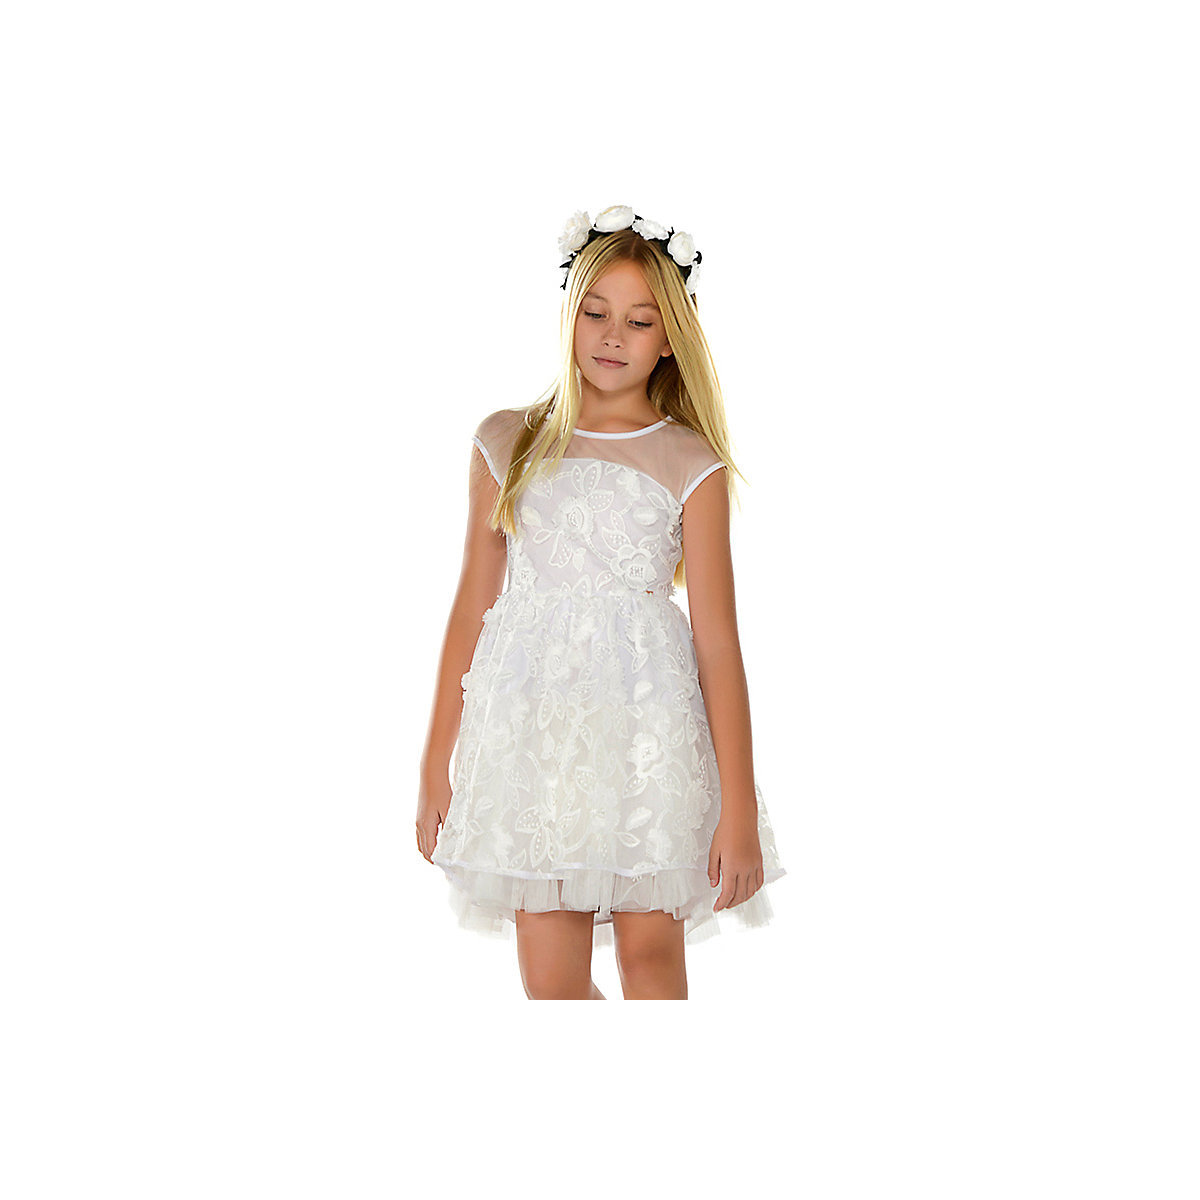 MAYORAL Dresses 10690527 Girl Children Party fitted pleated skirt White Polyester Preppy Style Floral Knee-Length Sleeveless Sleeve white tube top and floral print pleated hem skirt co ord